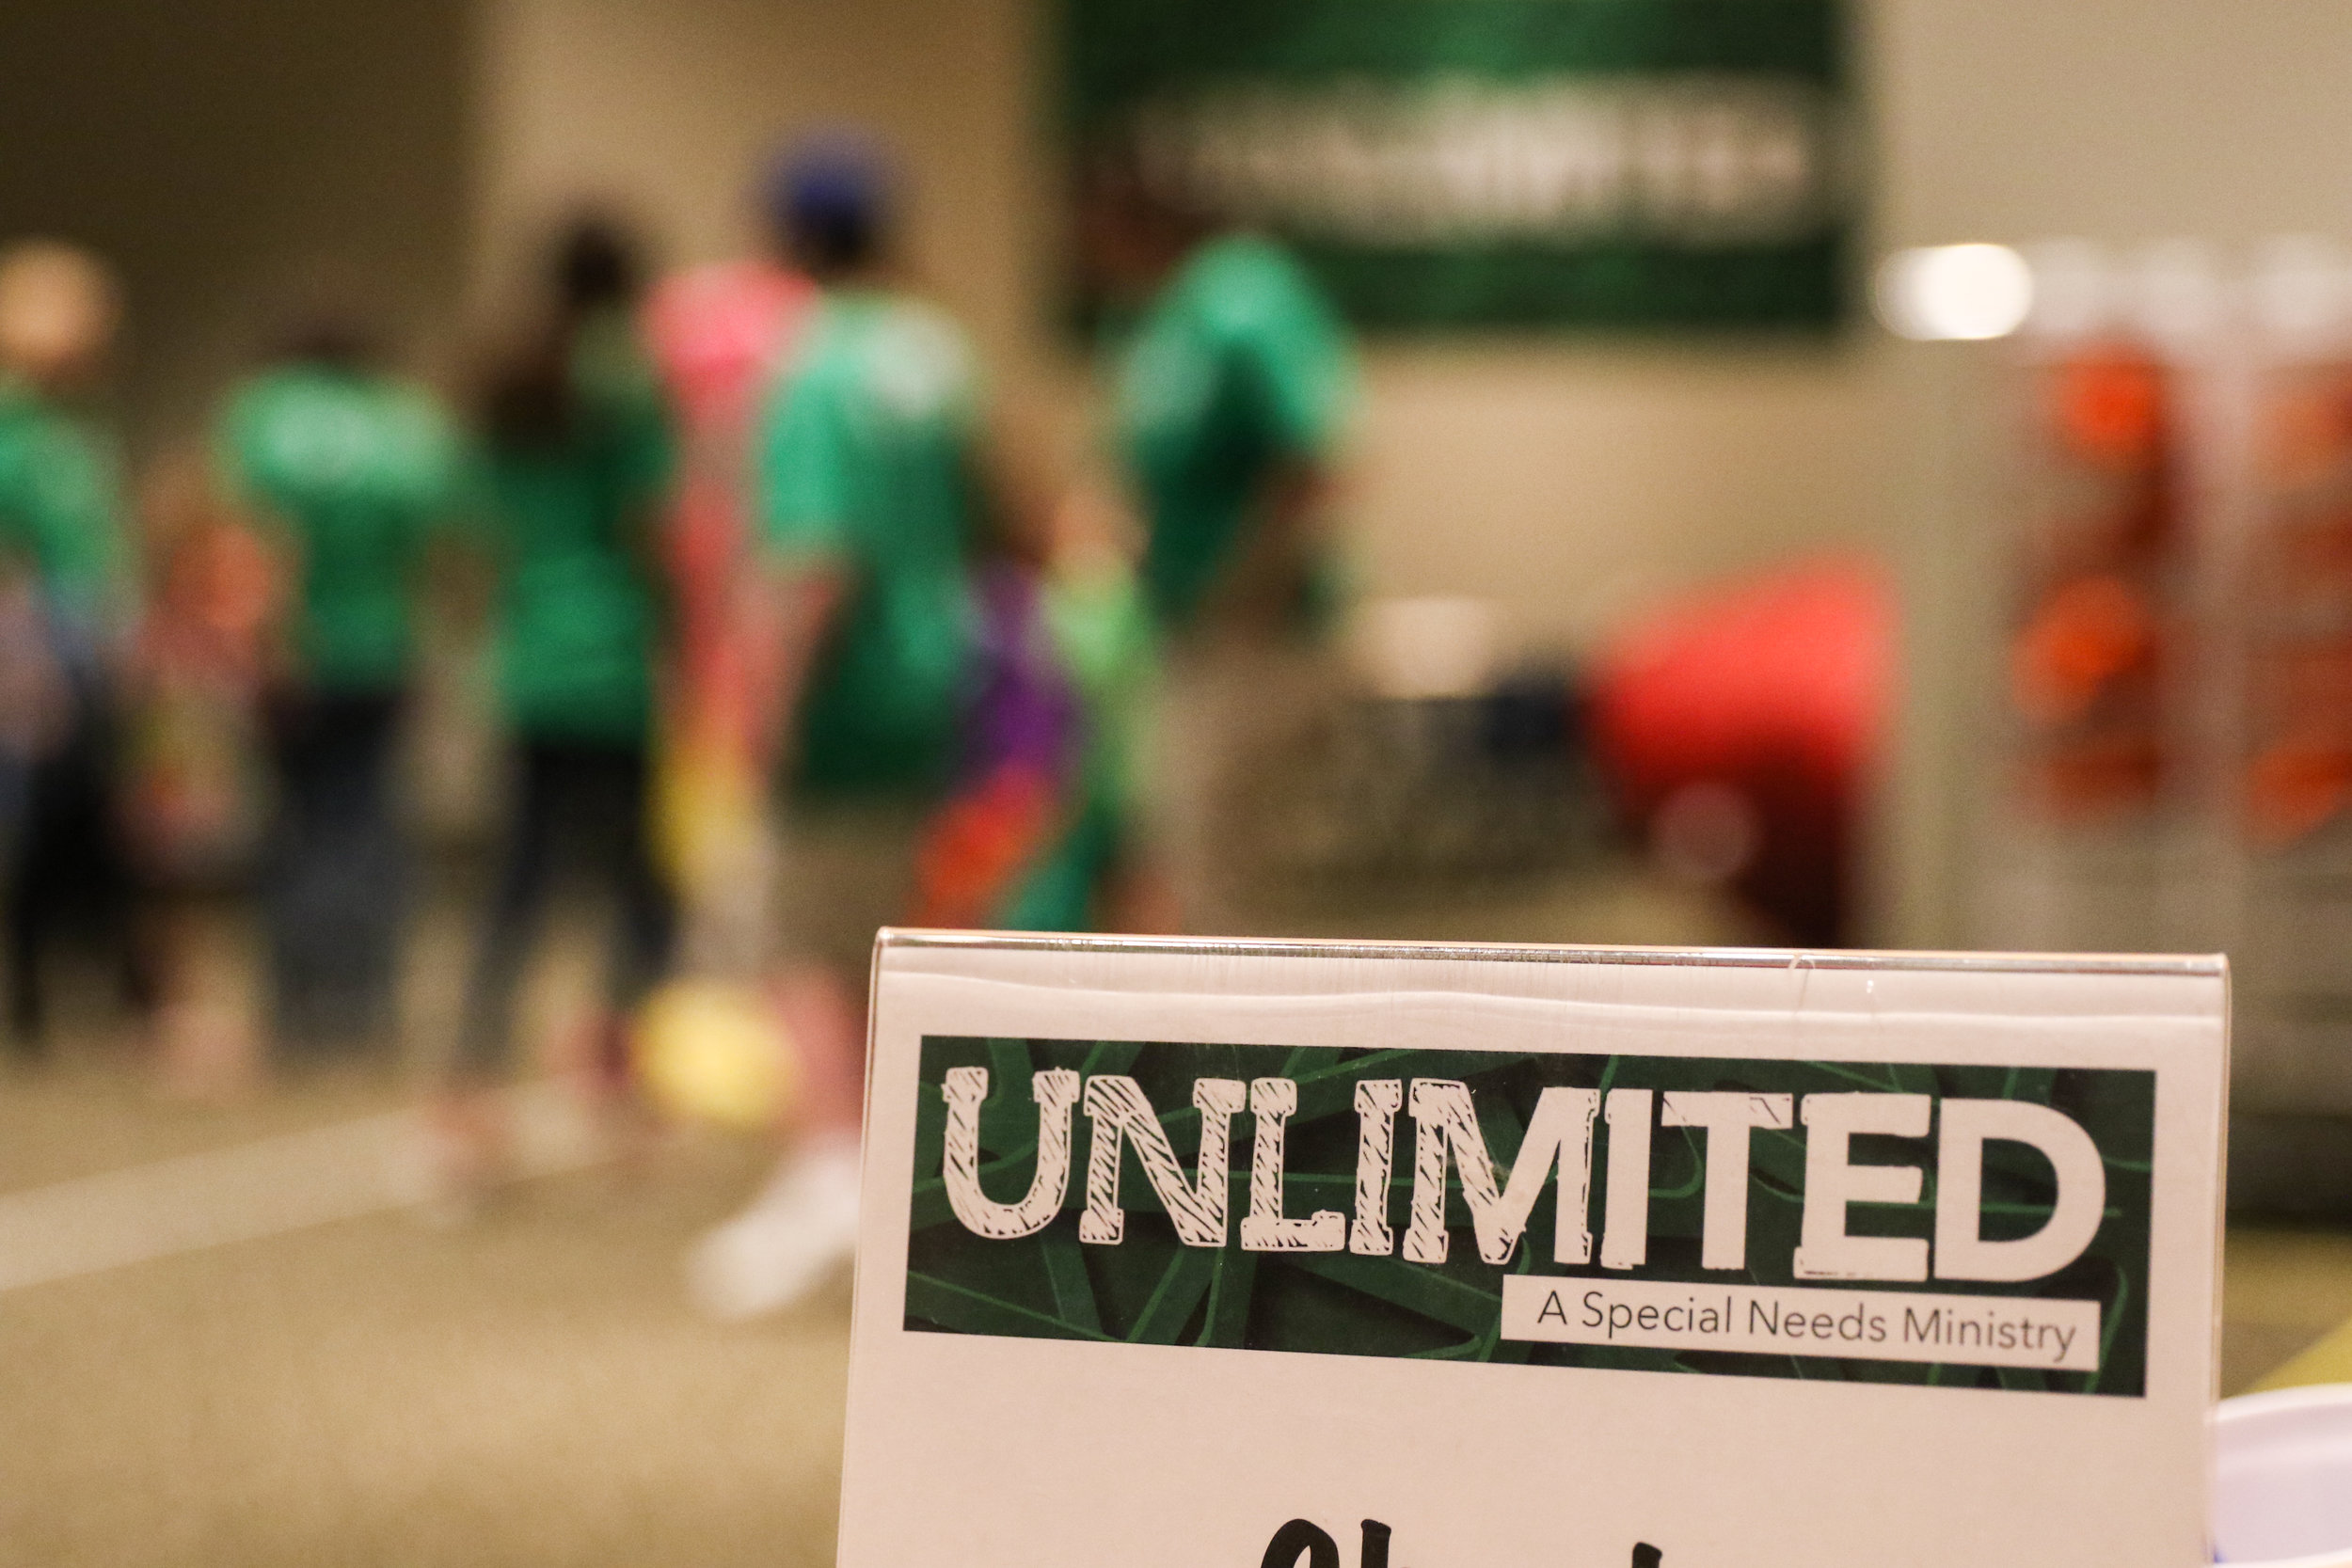 UNLIMITED -